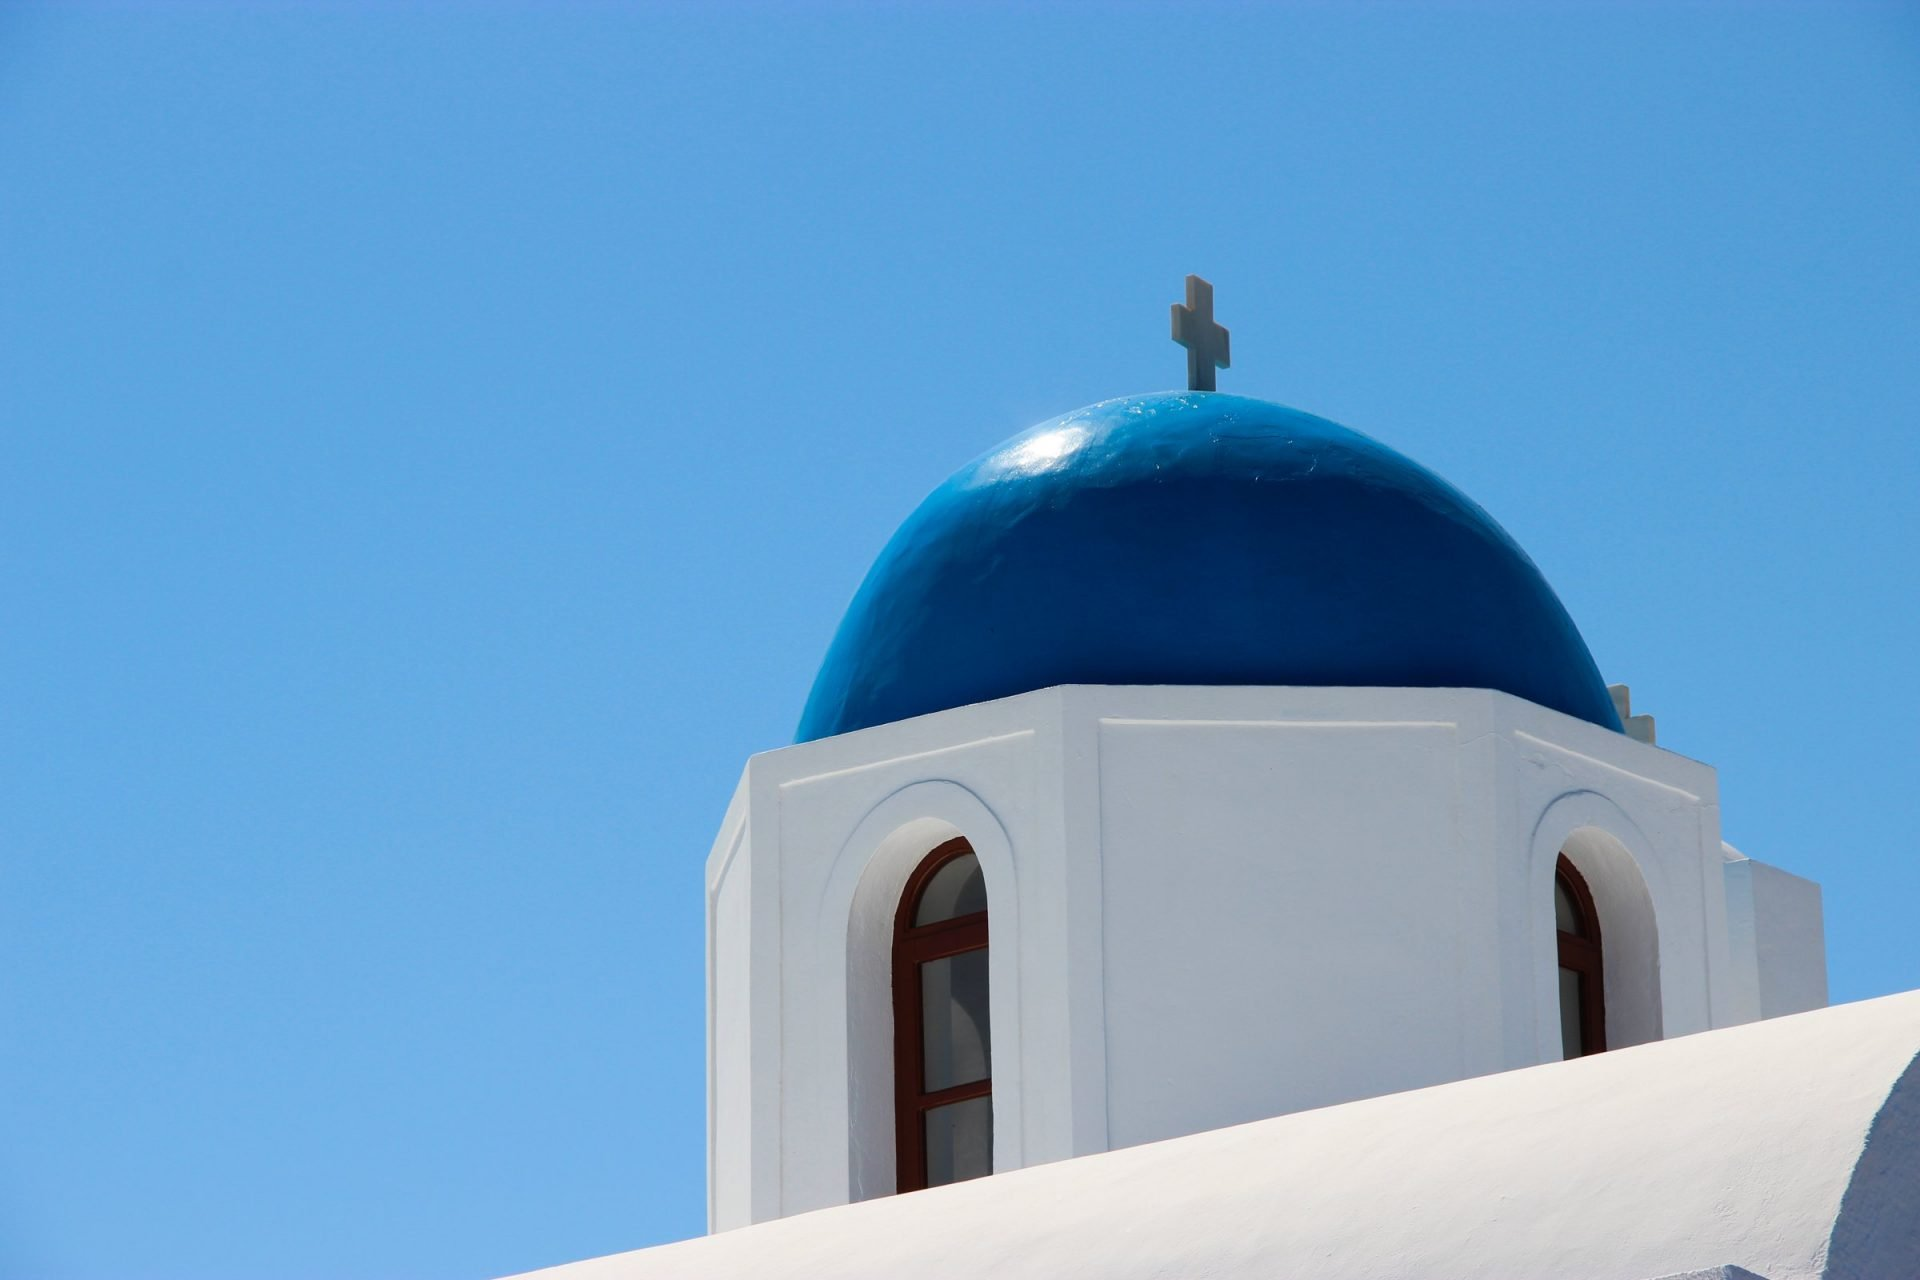 Blue Dome Of White Church In Greece